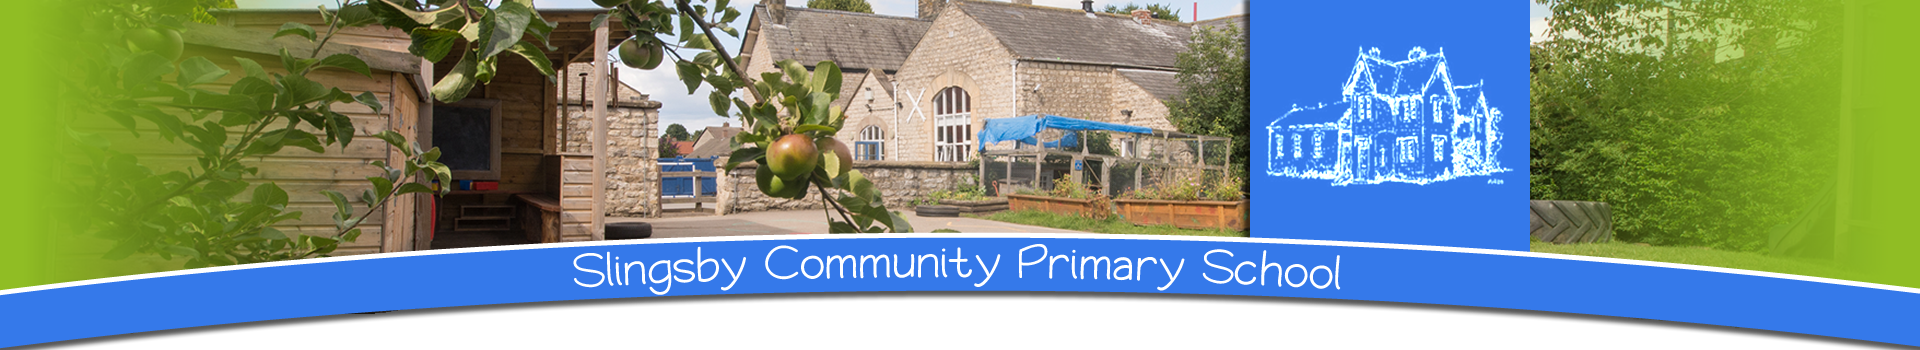 Slingsby Community Primary School